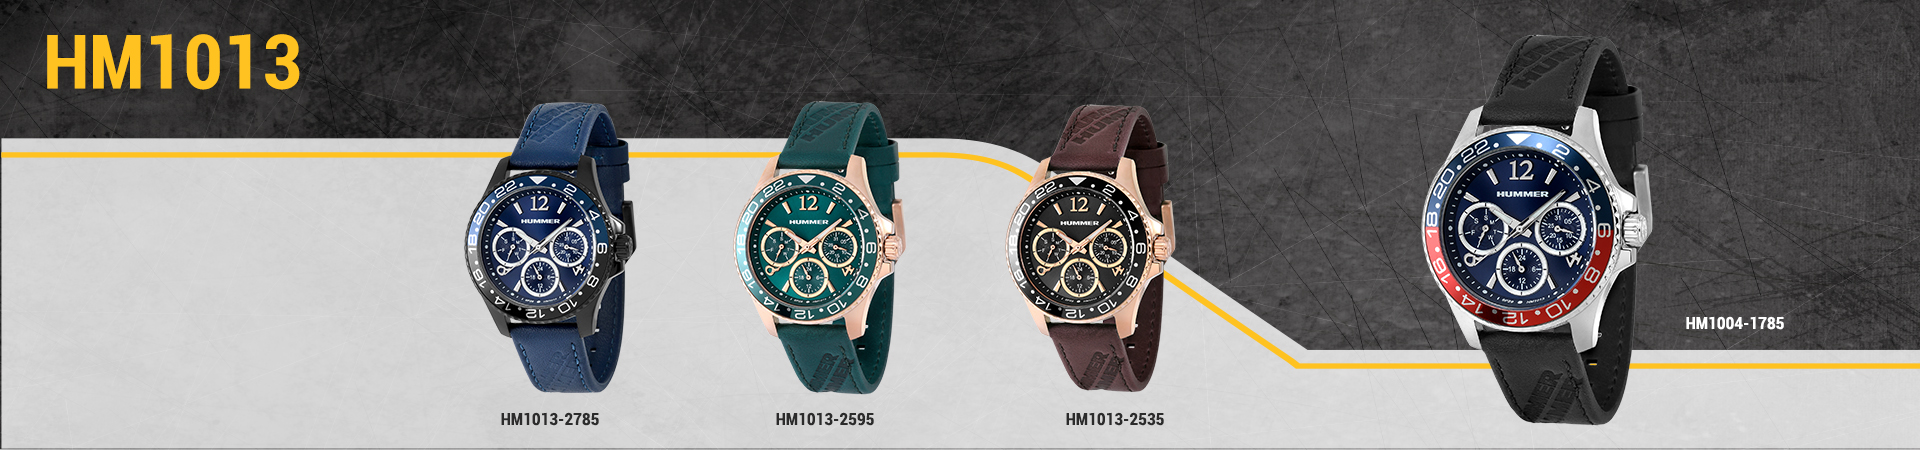 Hummer Watch Collection HM1013